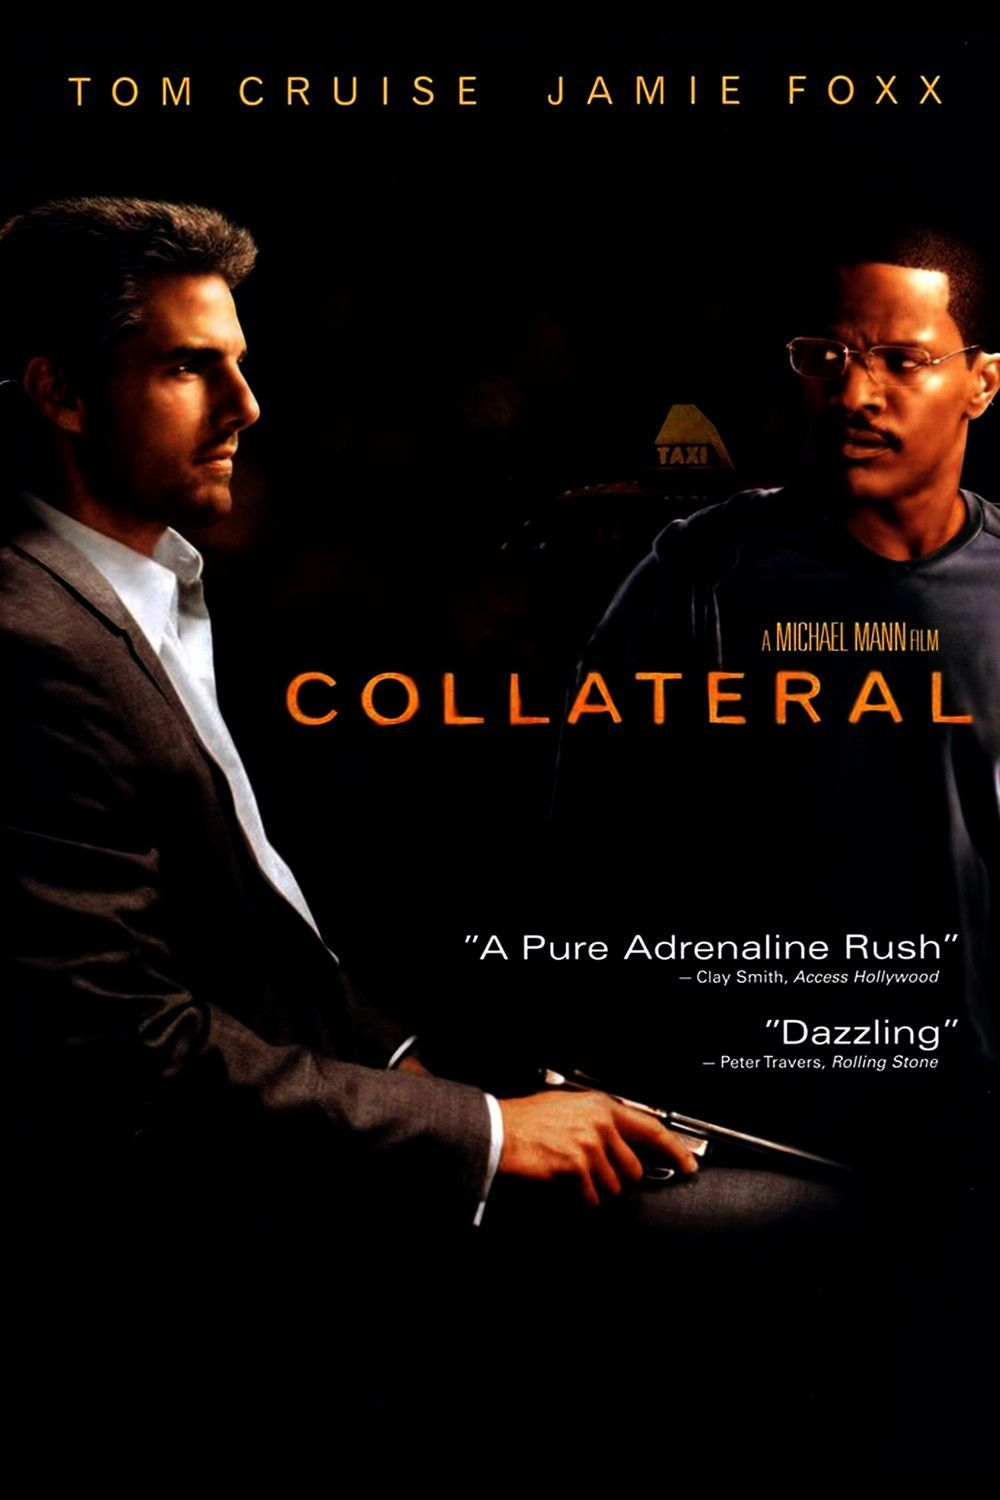 Collateral 2004 Thriller Drama Dir Michael Mann The Stranger Movie Movie Posters Collateral Film